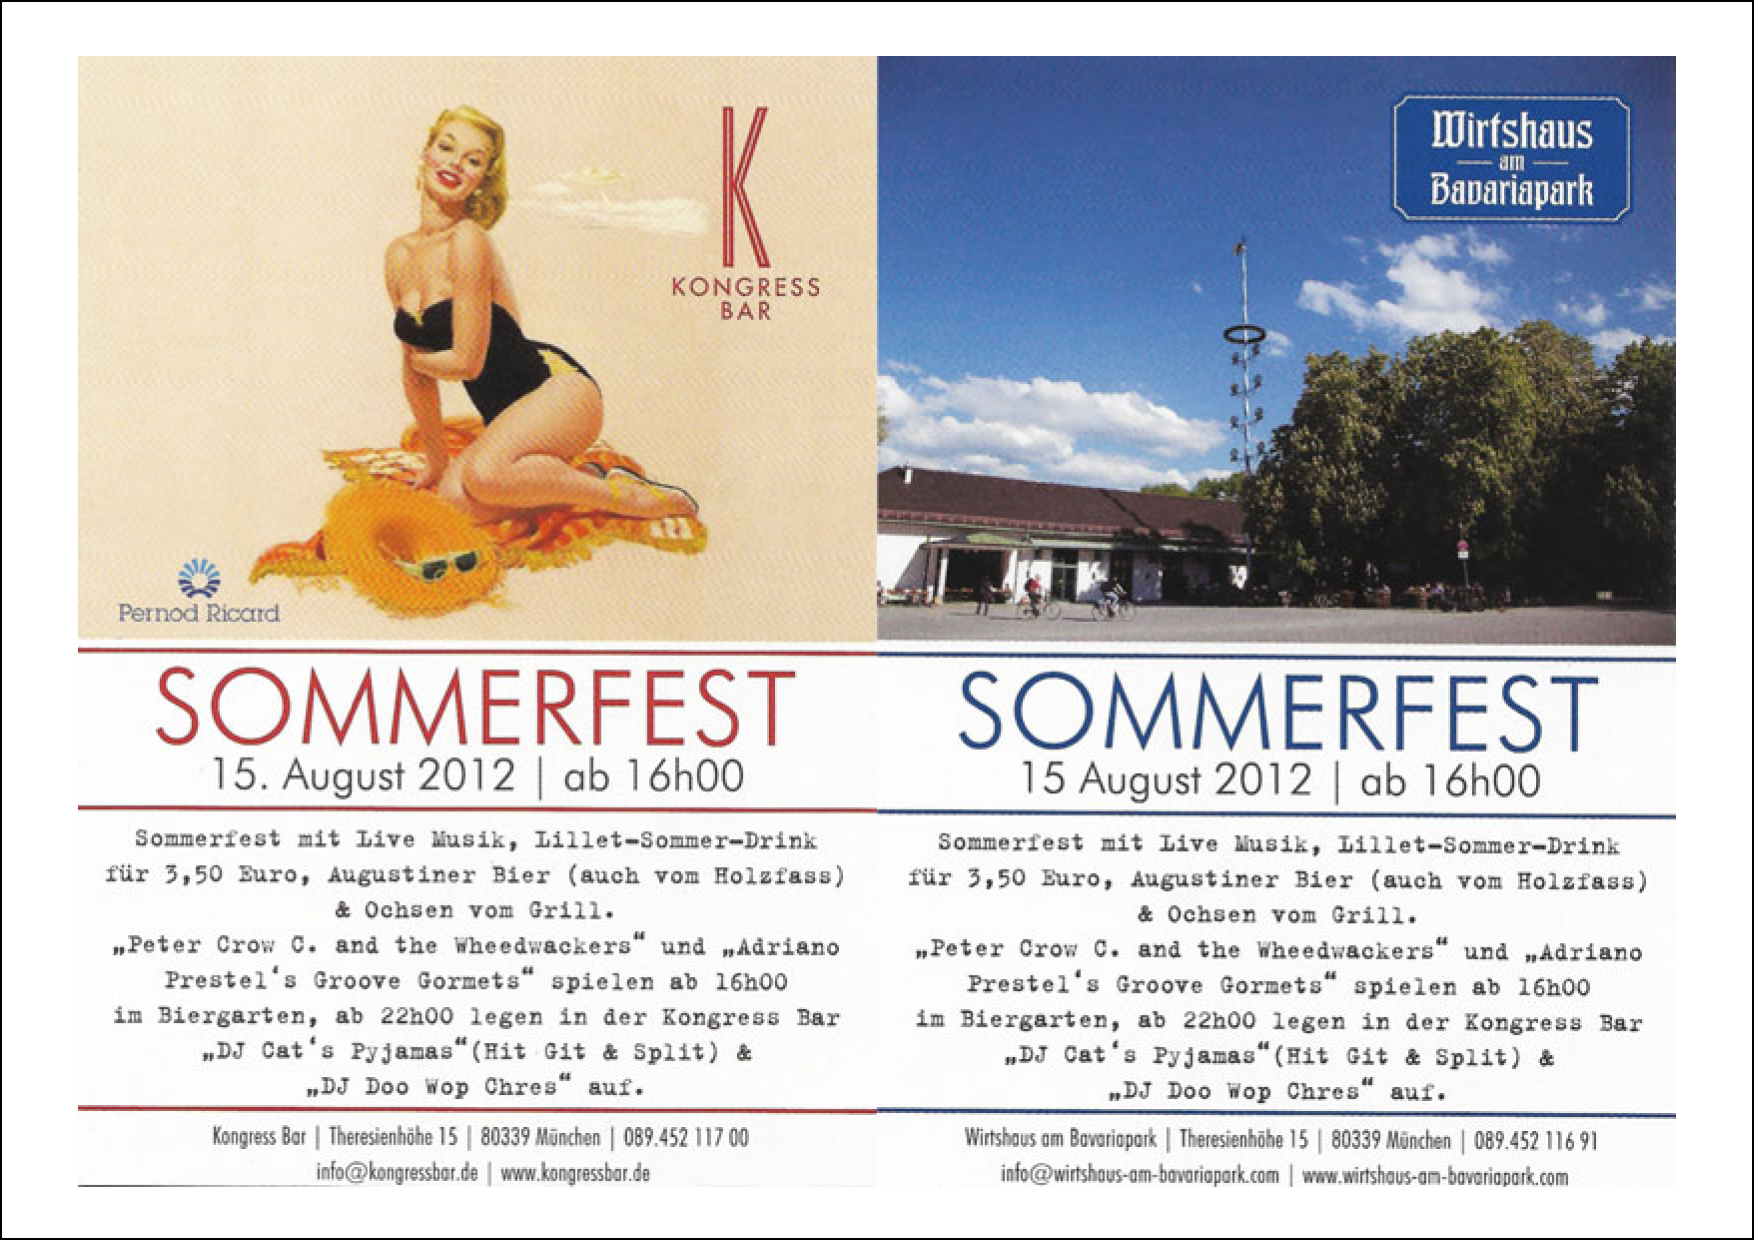 Summer fest Kongress Bar and Wirtshaus am Bavariapark 2012 Munich Flyer